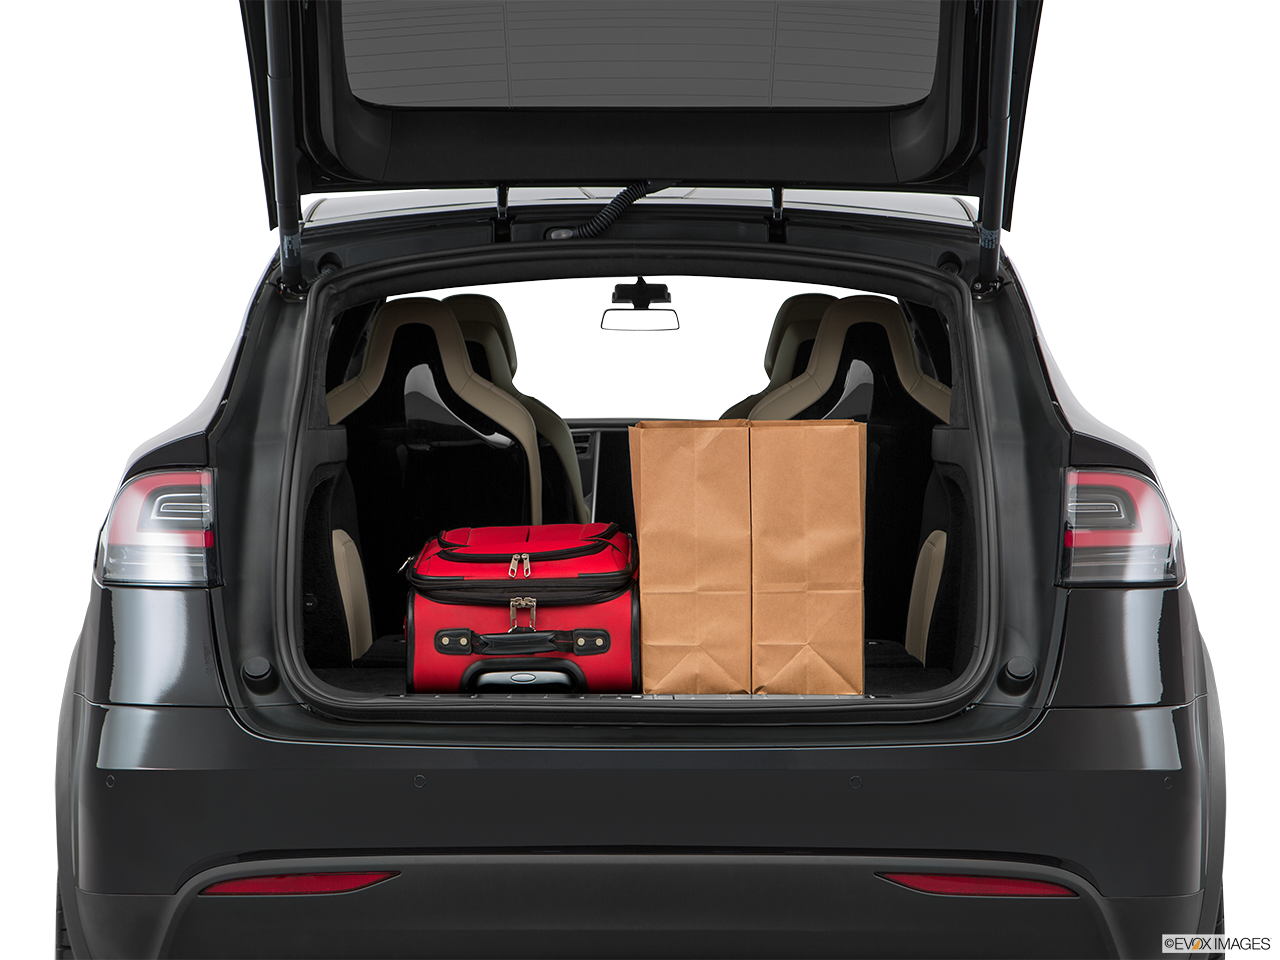 Trunk view of the Tesla Model X